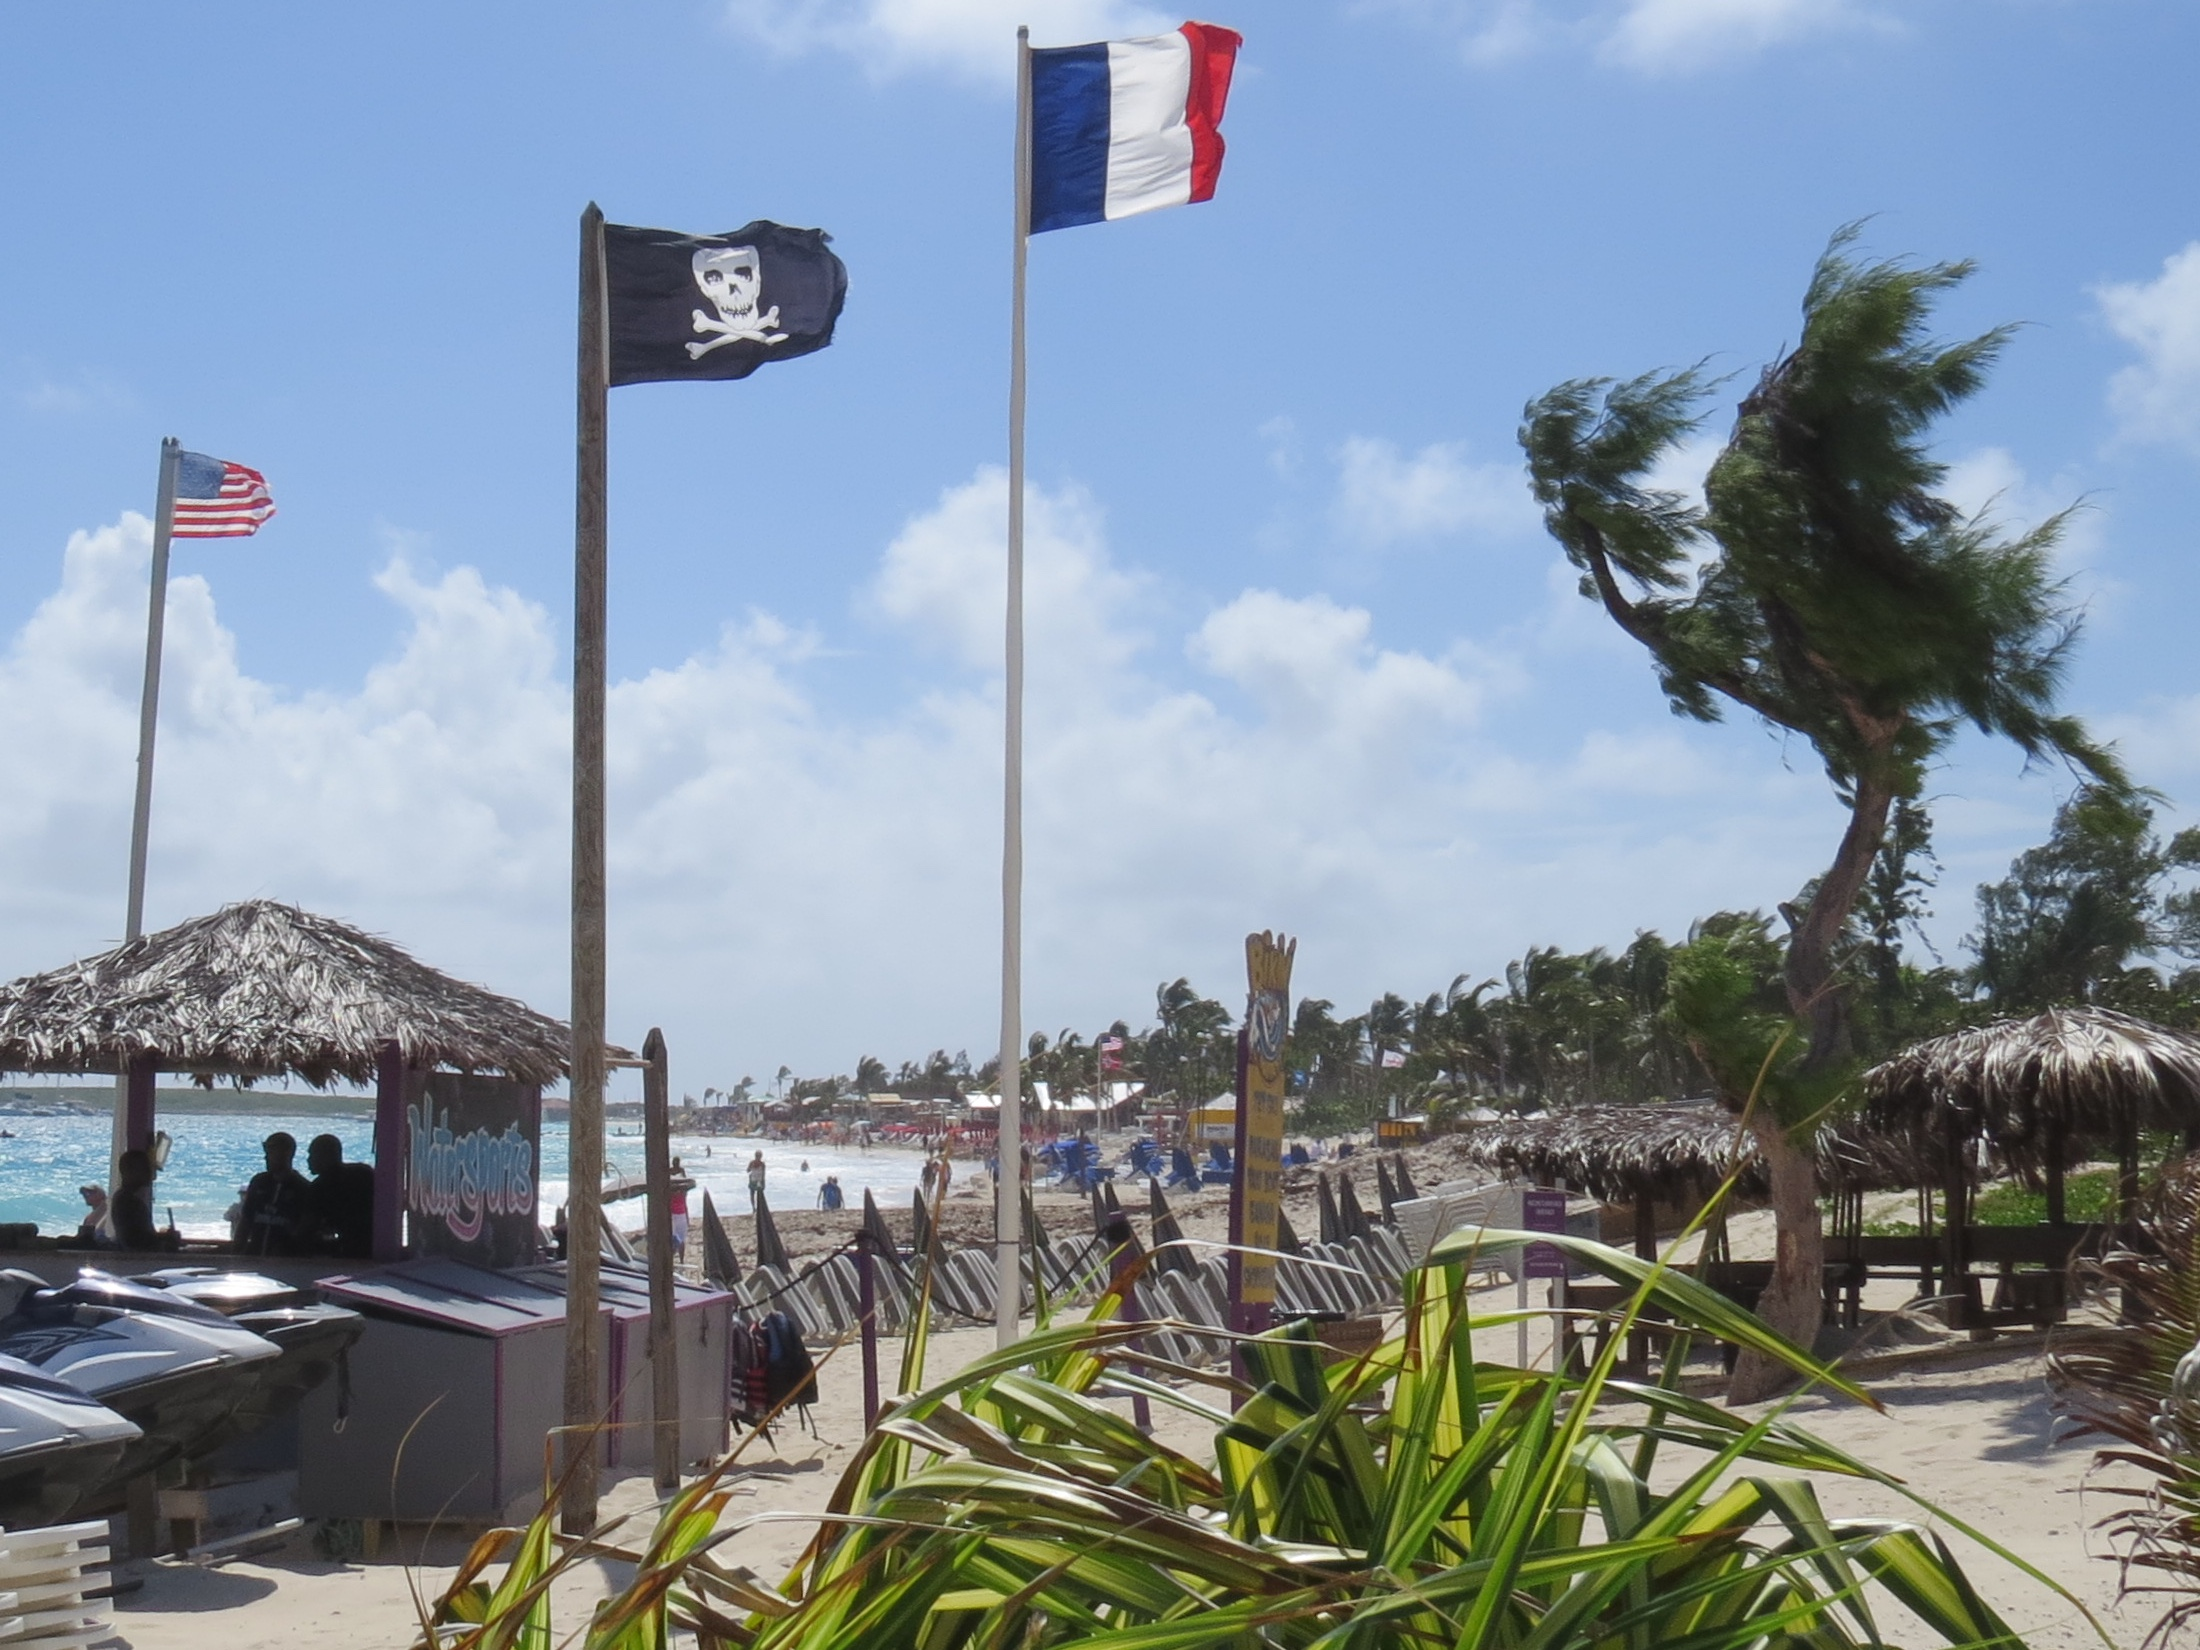 Visit St Maartin. Visit EnjoyVacationing.com to learn more!